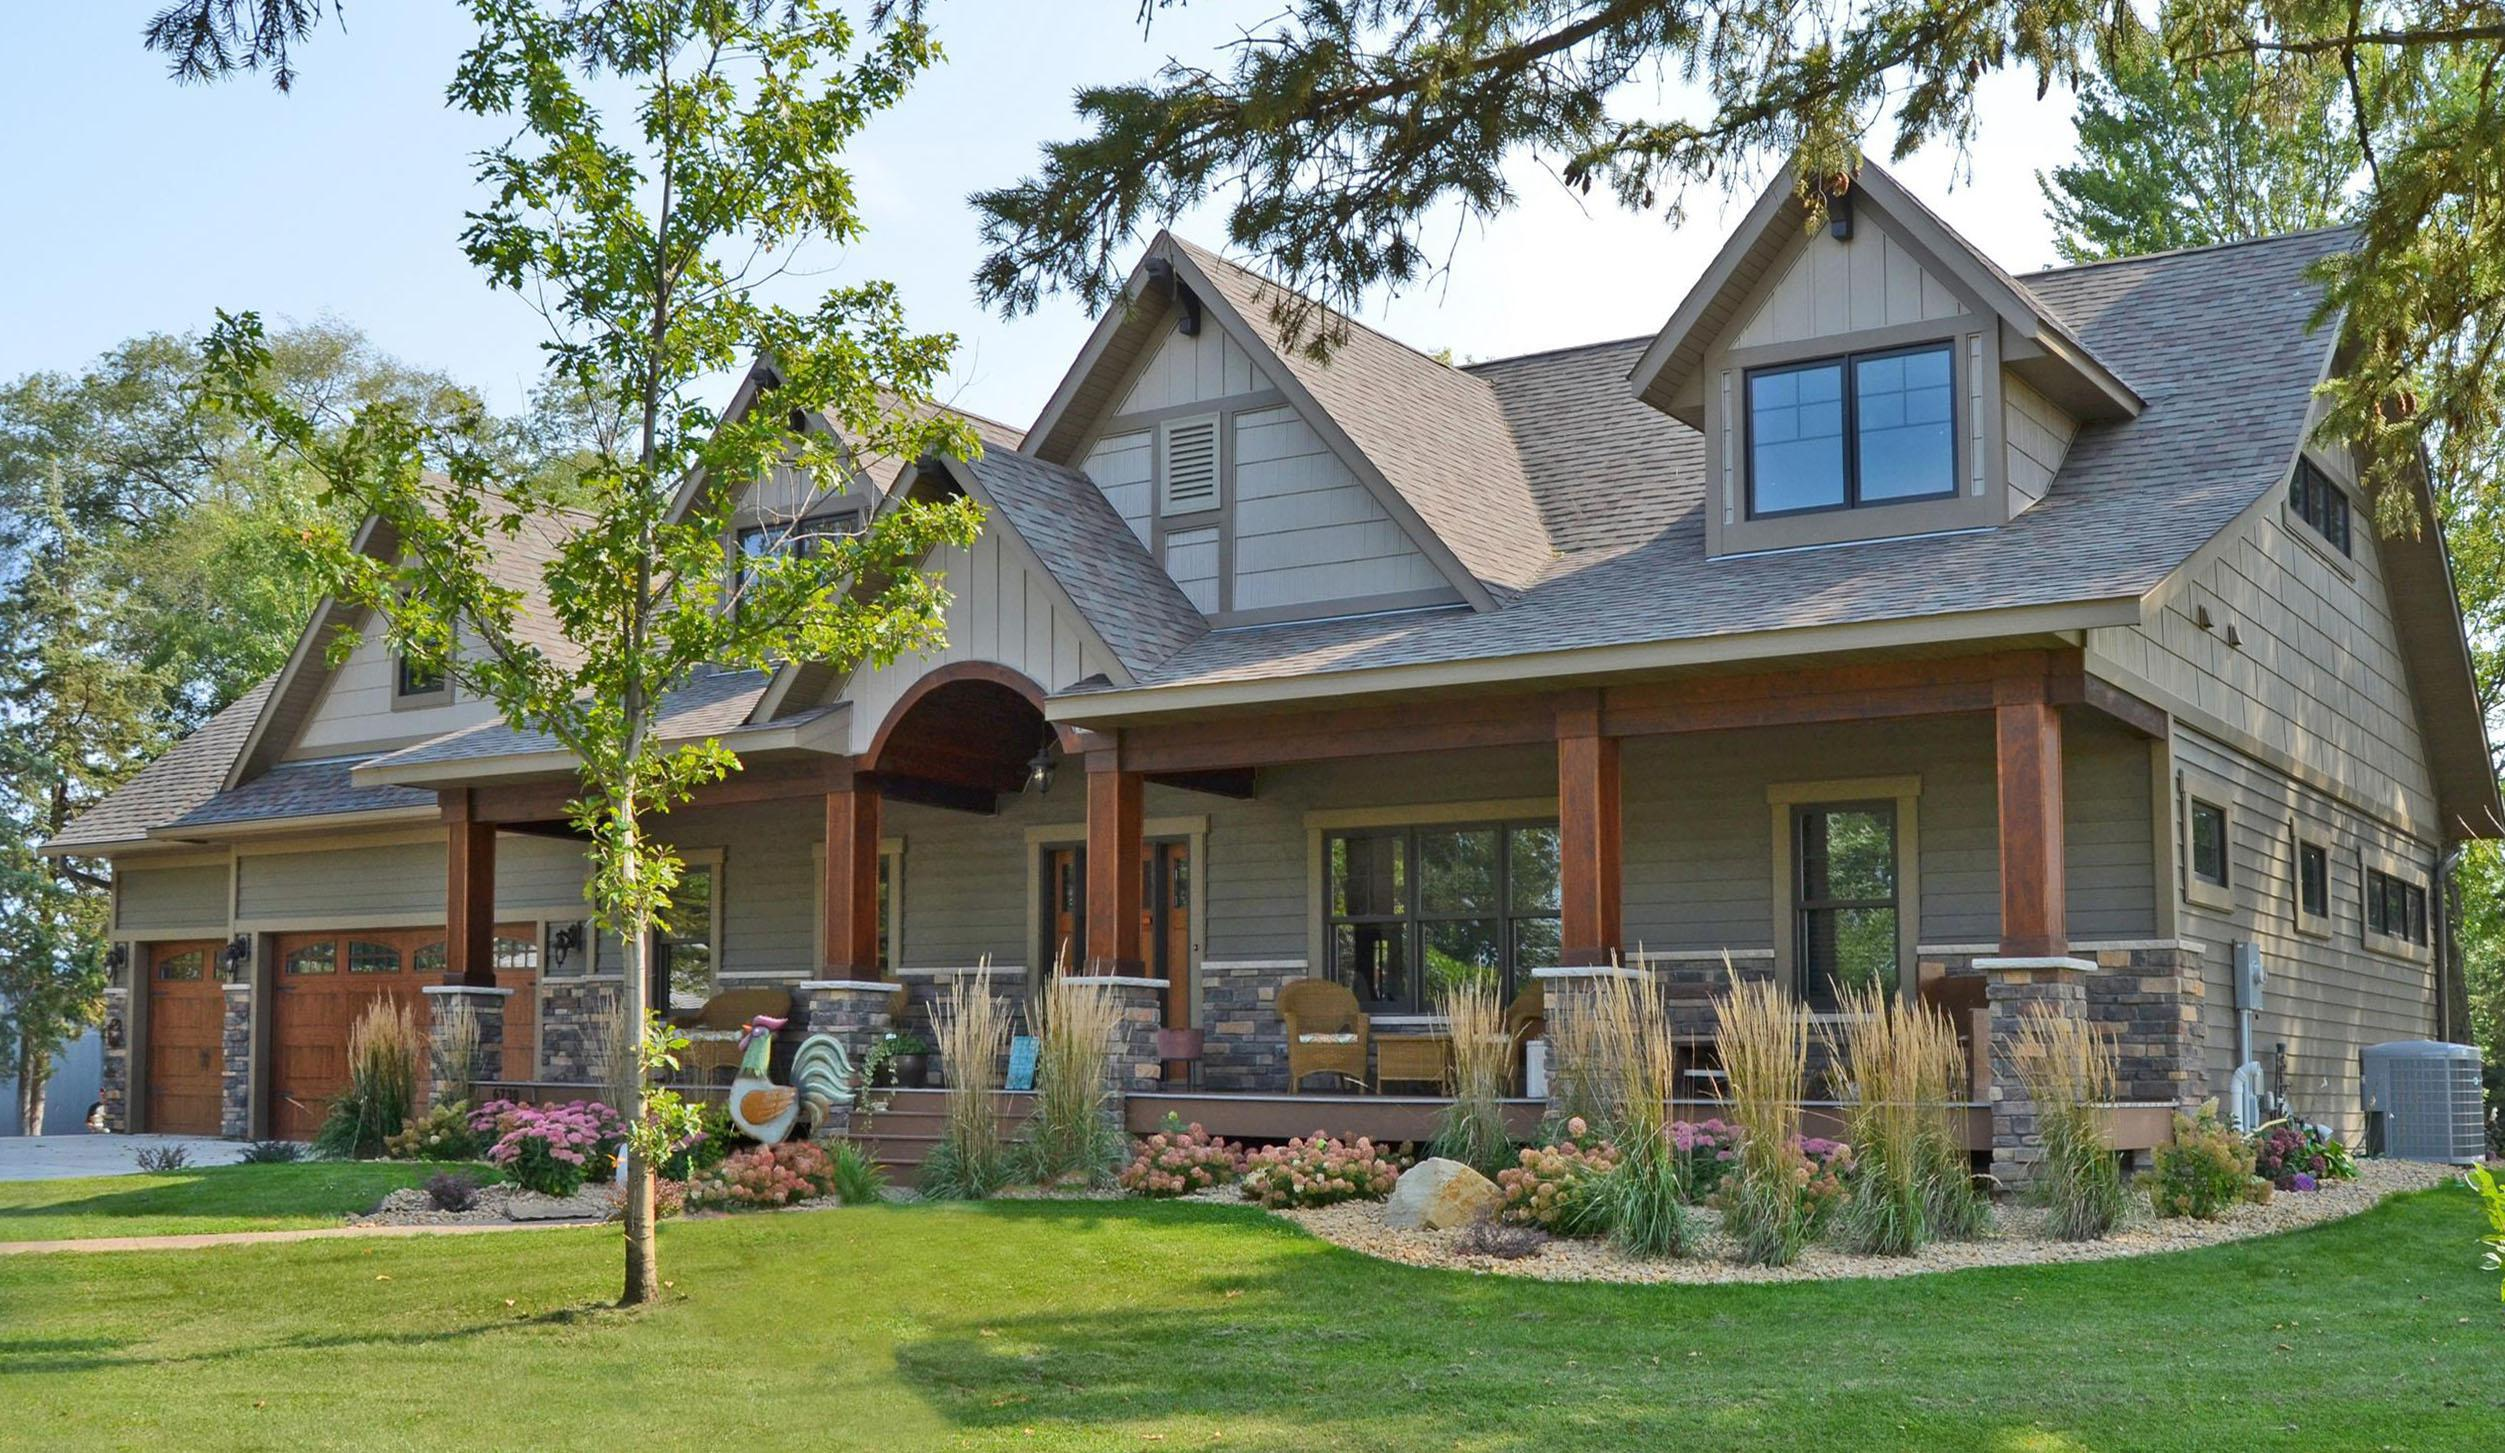 EDCO Products: Steel Roofing and Siding - Timeless Style, Lasting ...